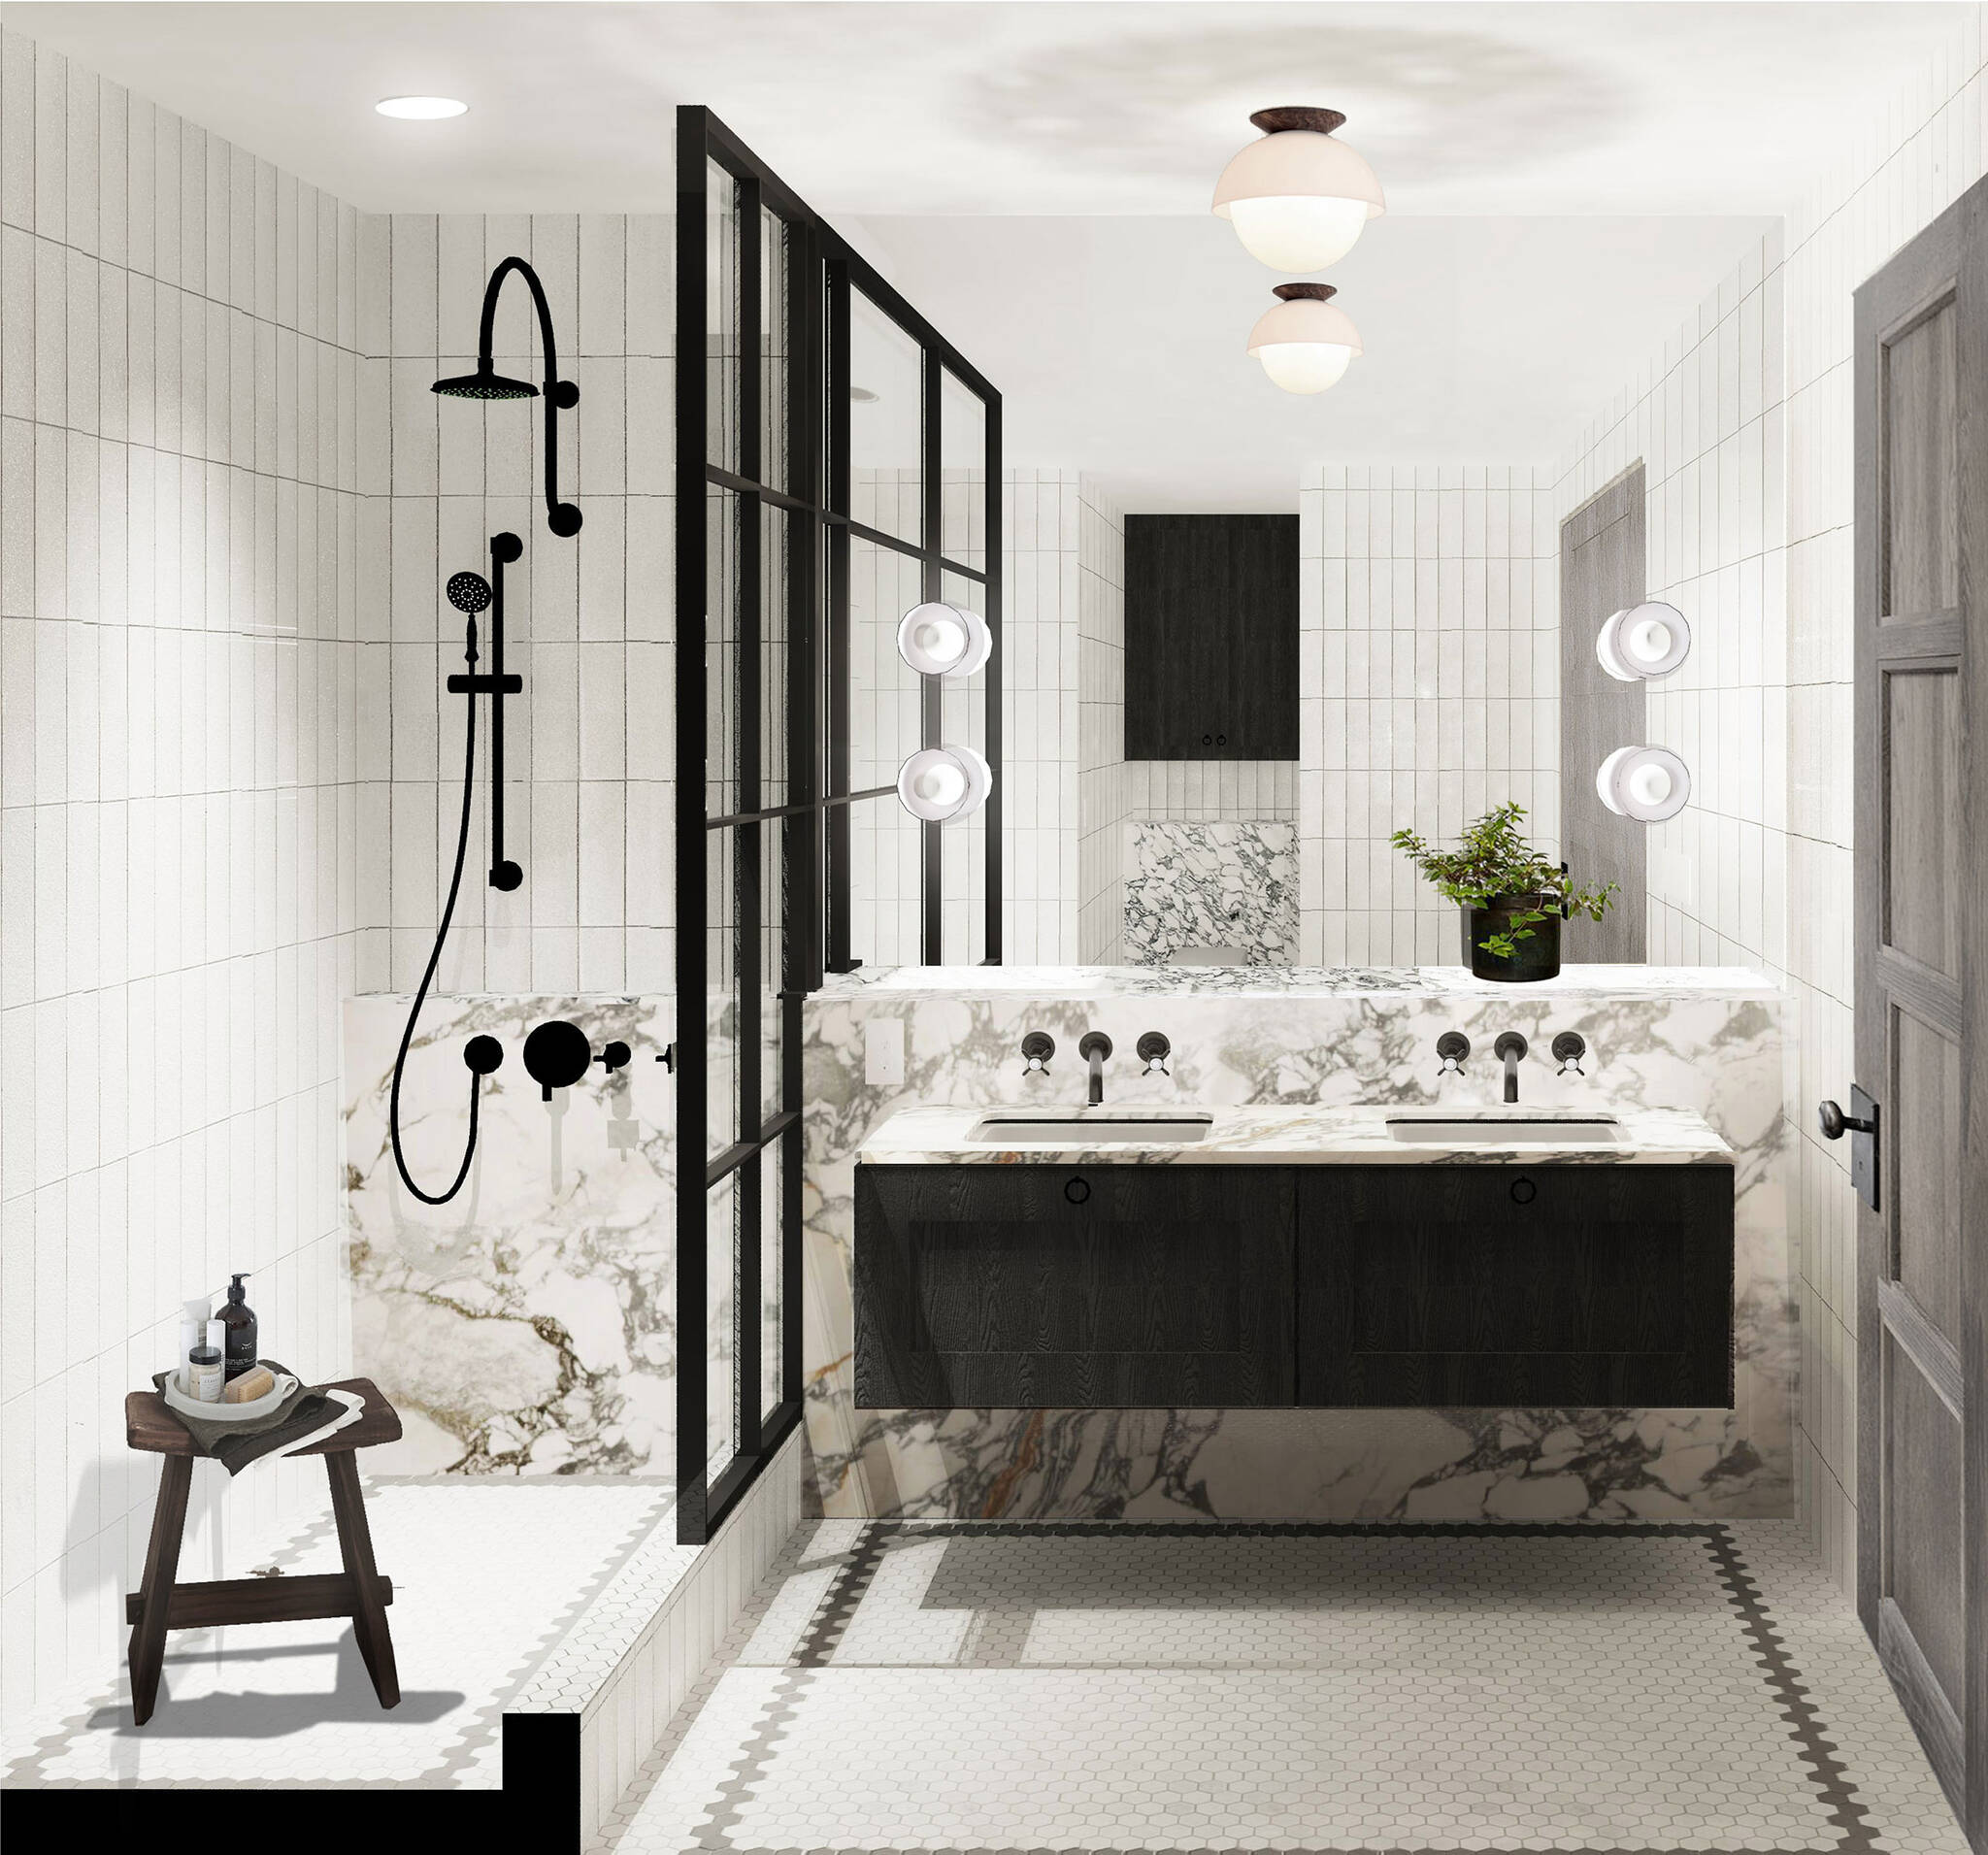 Bathroom of the Residence renovation project on the East Side of Manhattan, New York City designed by the architecture studio Danny Forster & Architecture